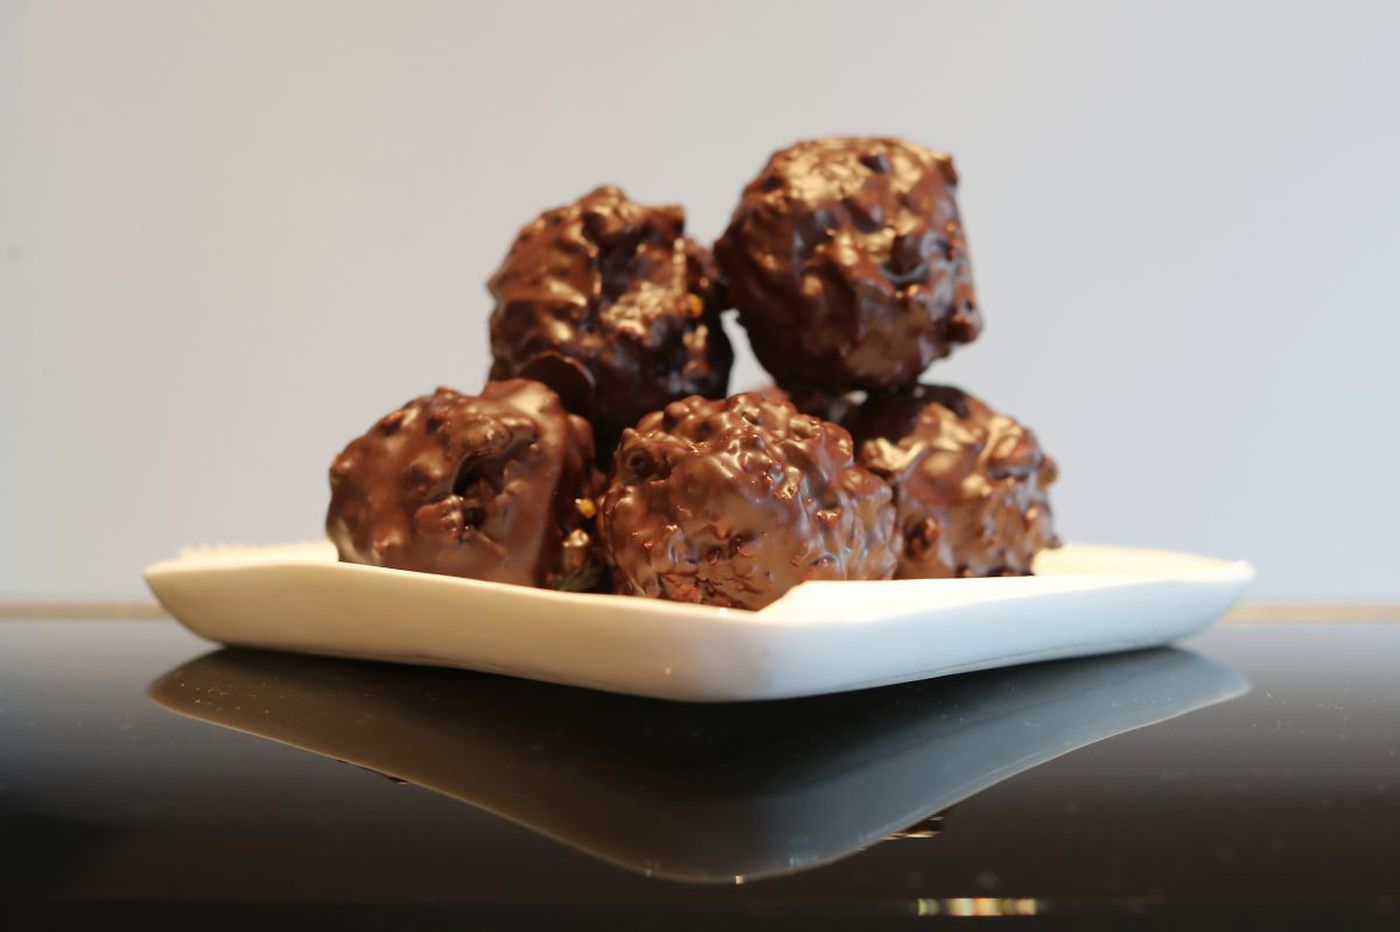 Chocolate rochers with coconut and caramel